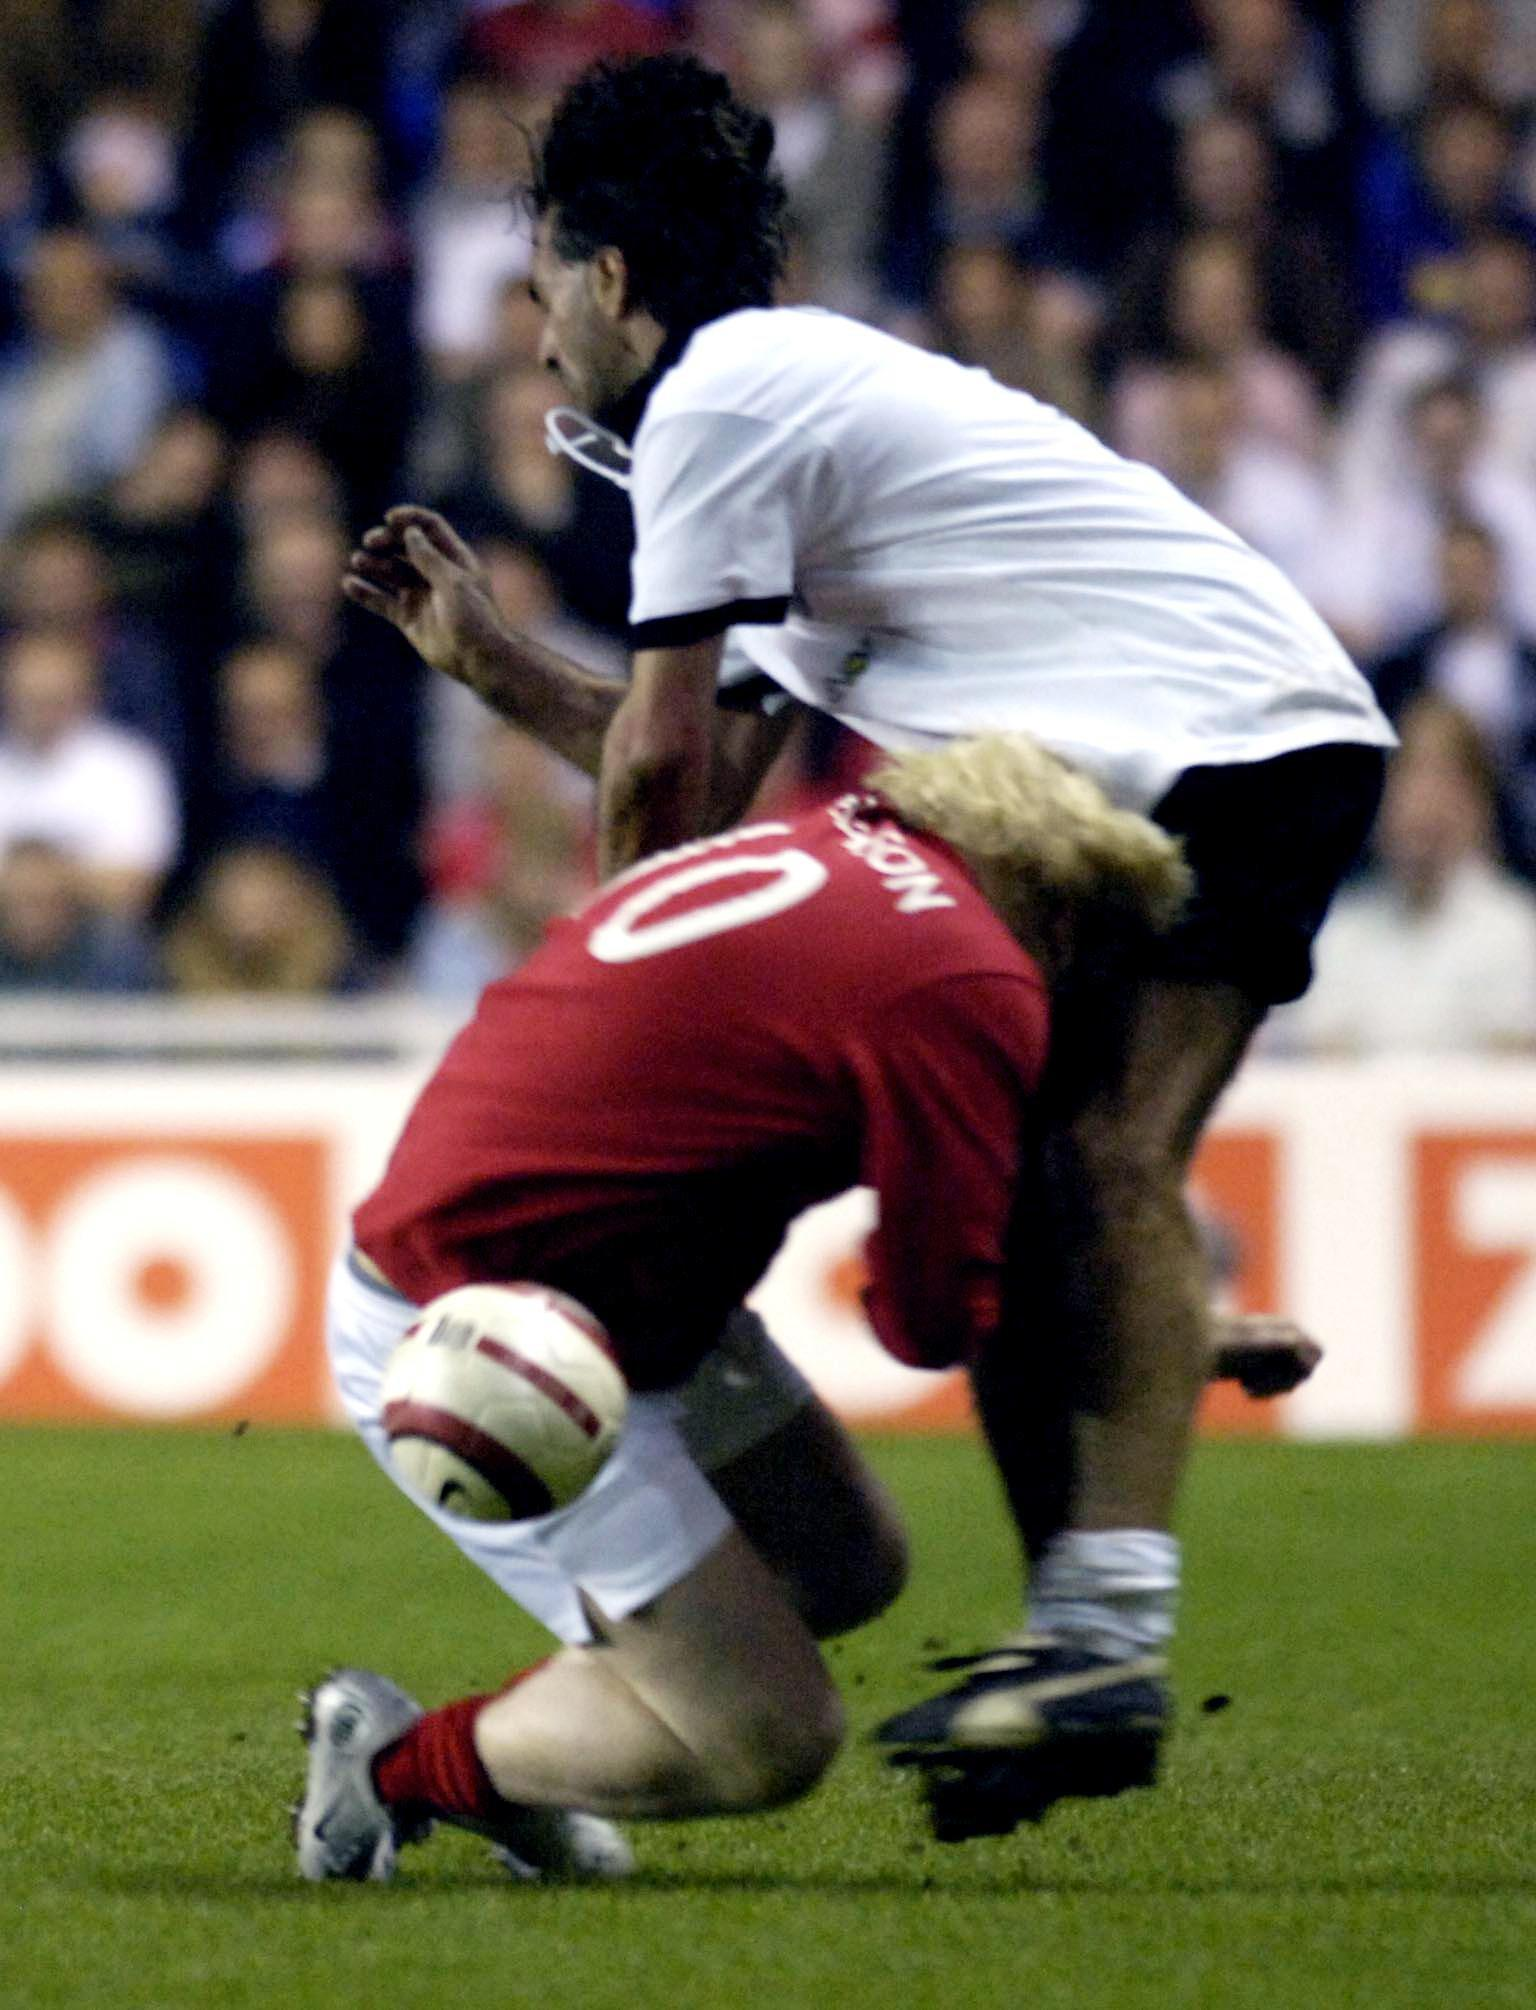 England's Boris Johnson (L) tackles Germany's Maurizio Gaudino during the Legends match at the Madejski Stadium in Reading.